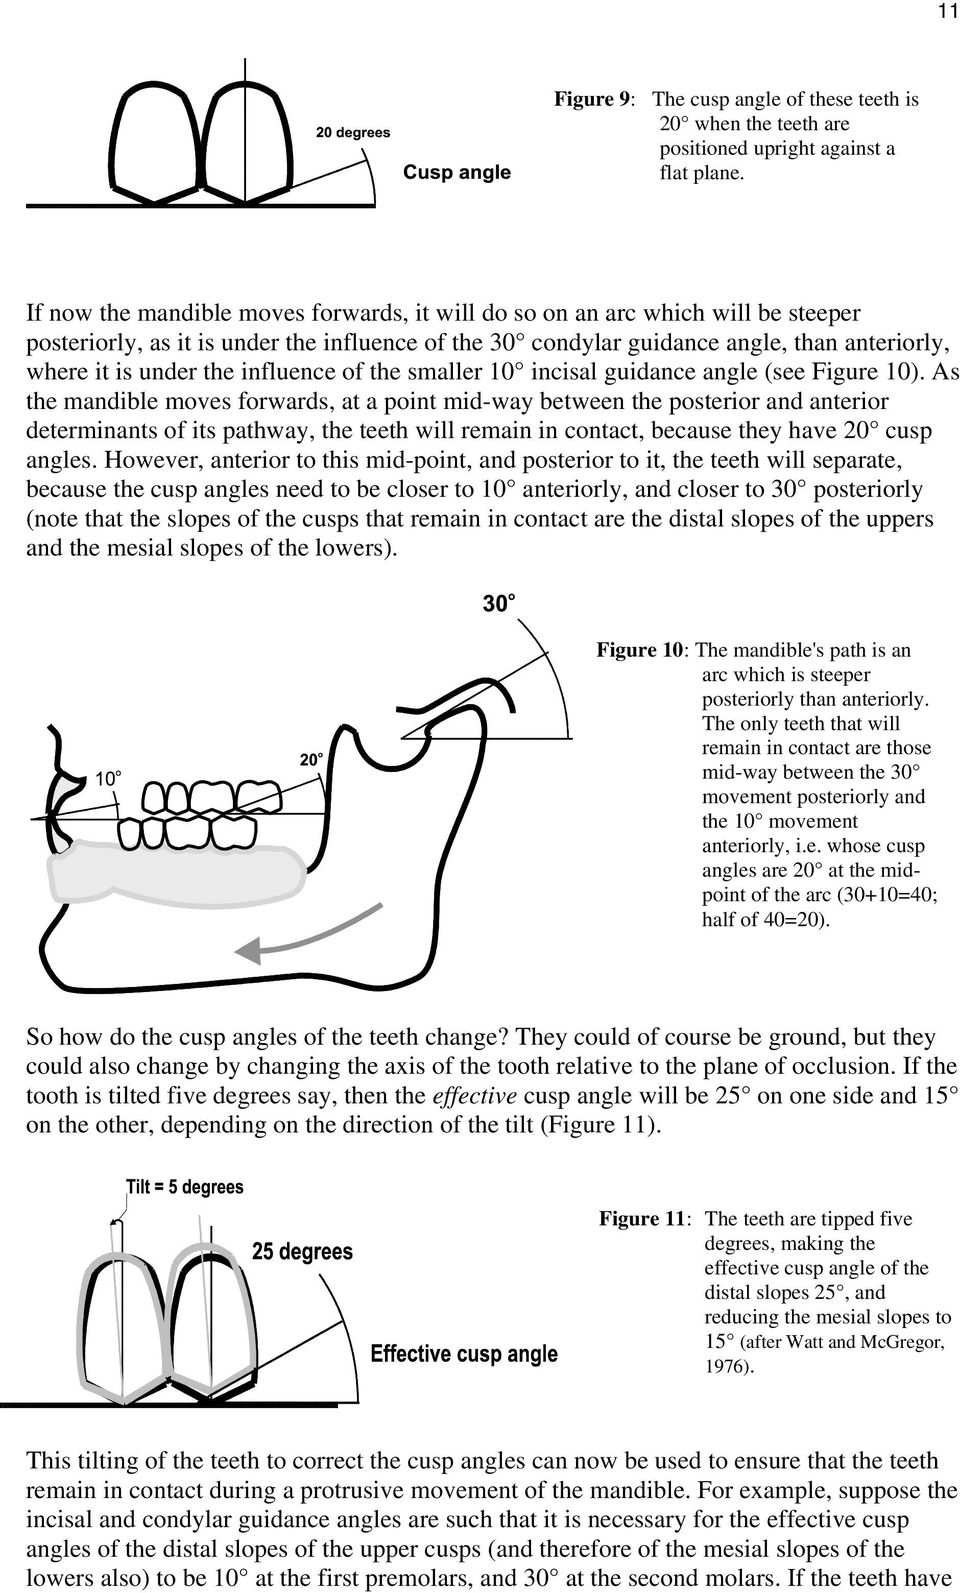 influence of the smaller 10 incisal guidance angle (see Figure 10).